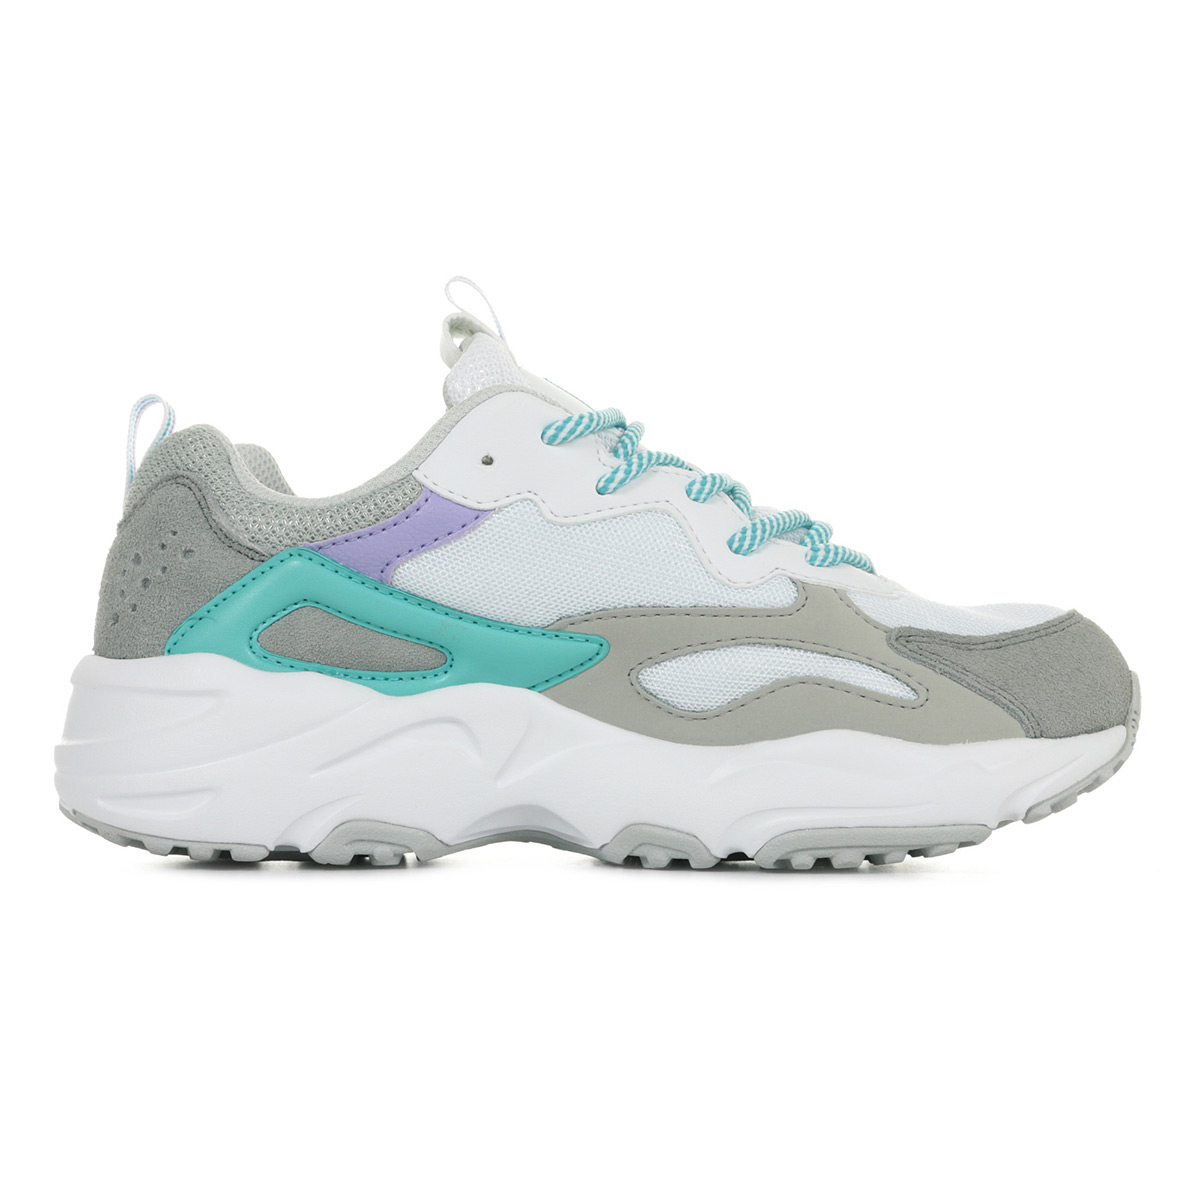 Tracer Blue Wn's Ray Mode Curacao Fila Femme 10106862dBaskets MzVGqSUp